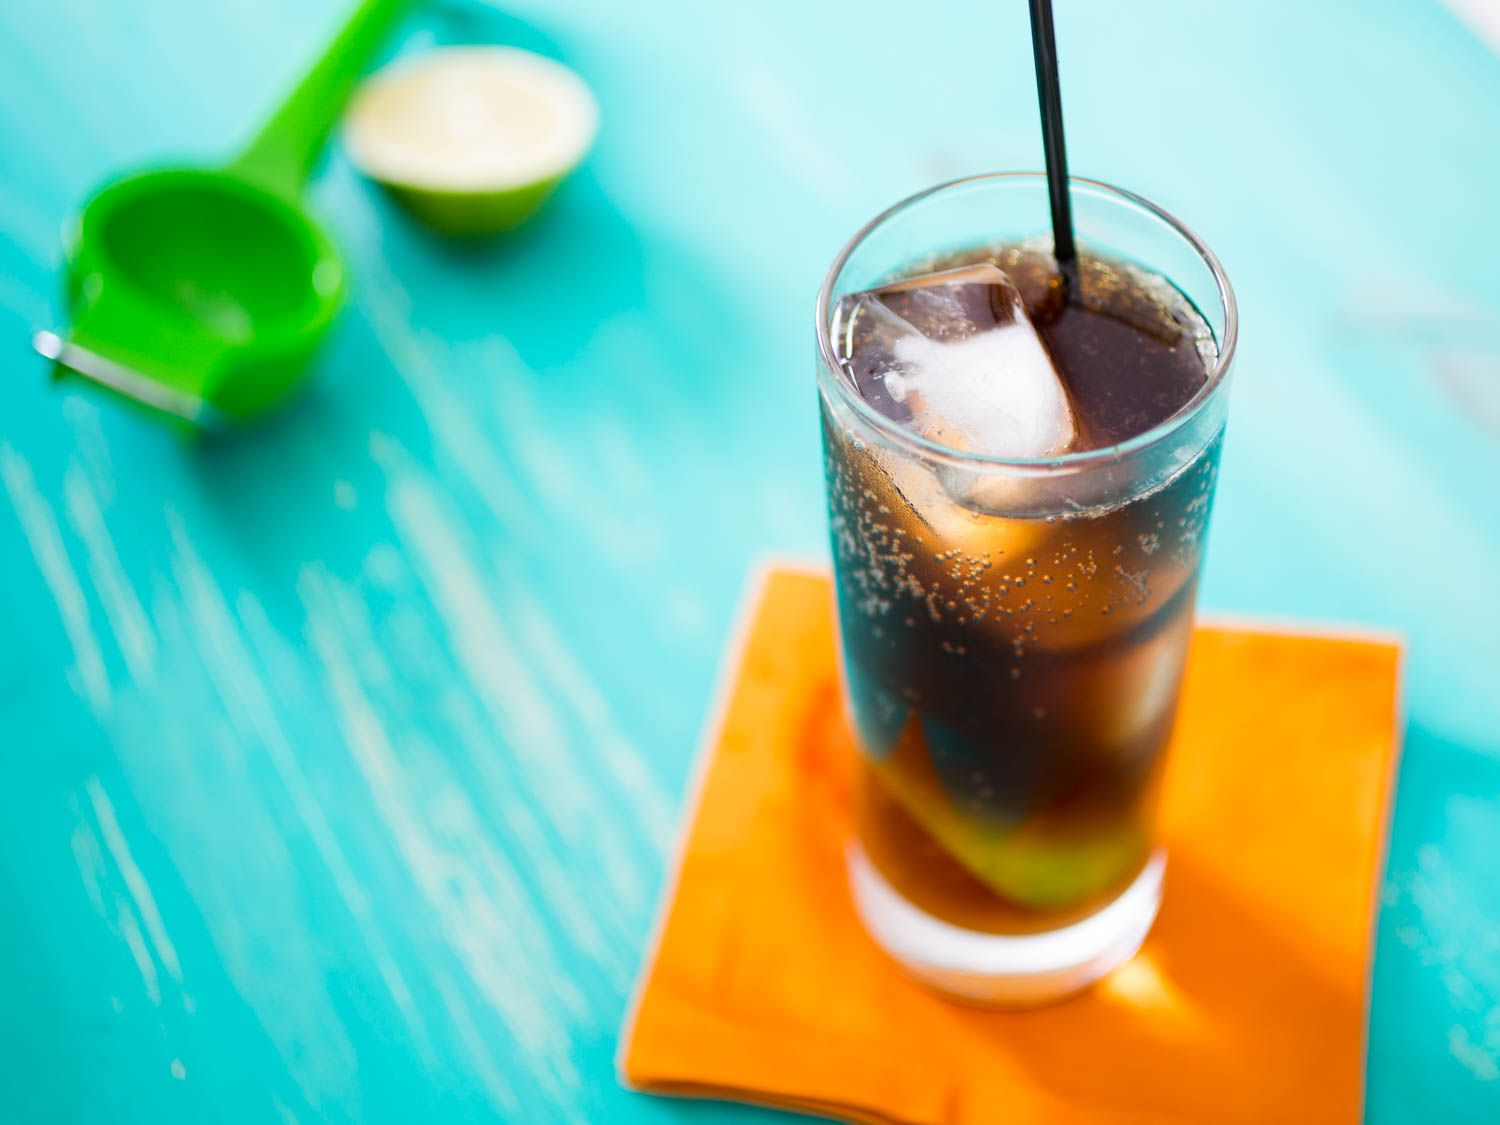 20150622-3-ingredient-cocktail-cuba-libre-vicky-wasik